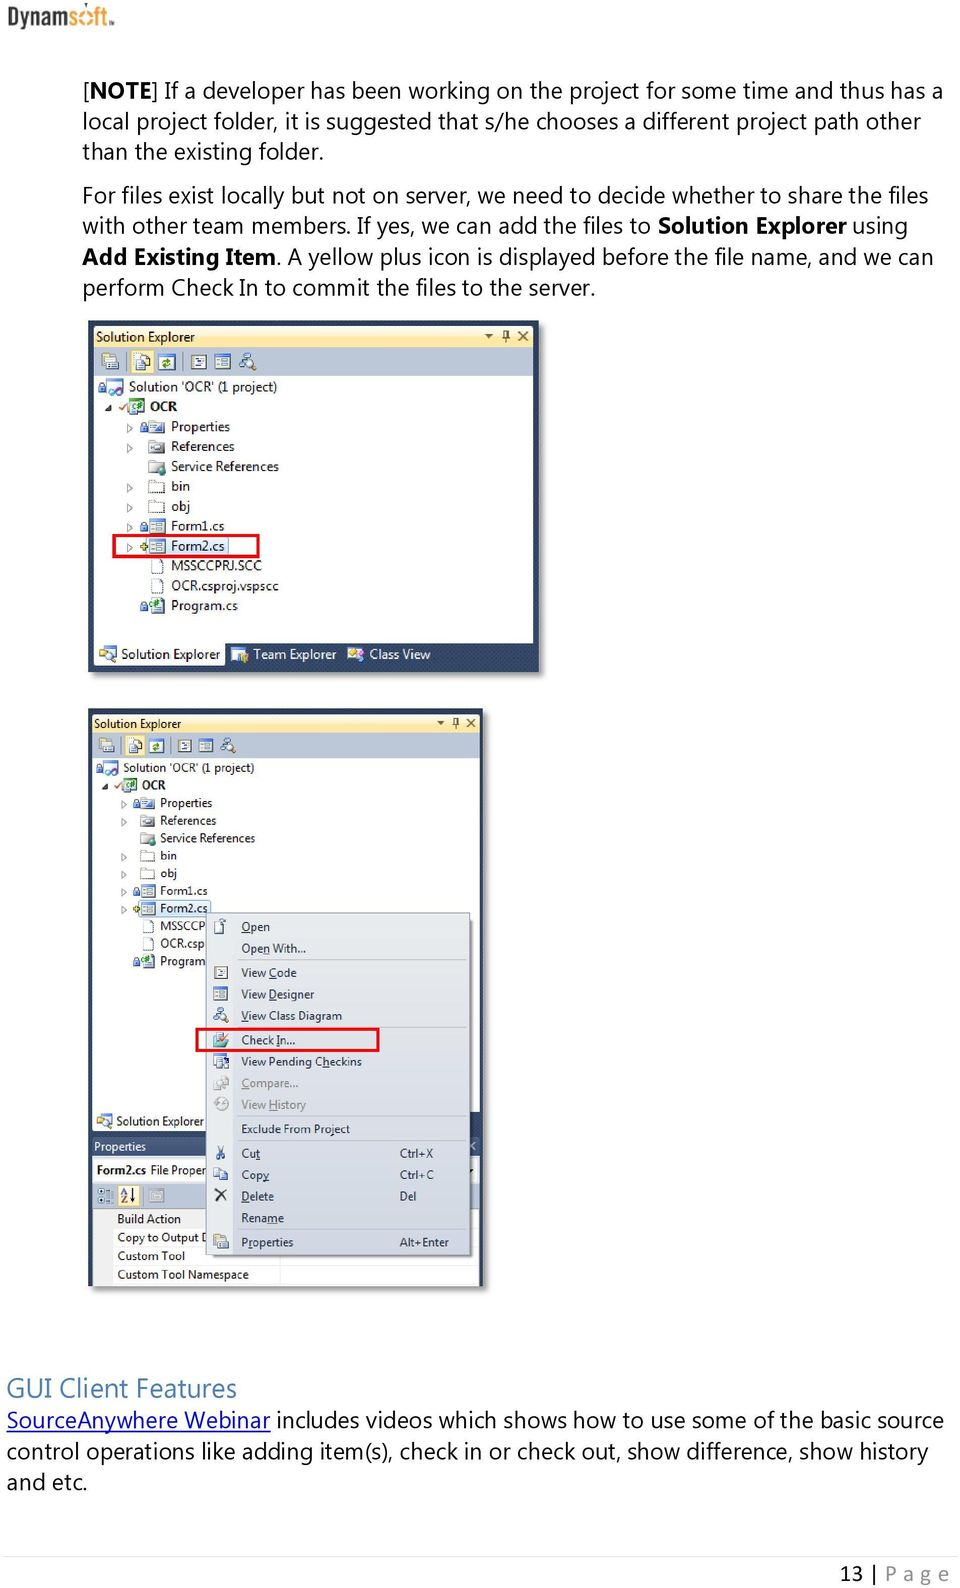 If yes, we can add the files to Solution Explorer using Add Existing Item.